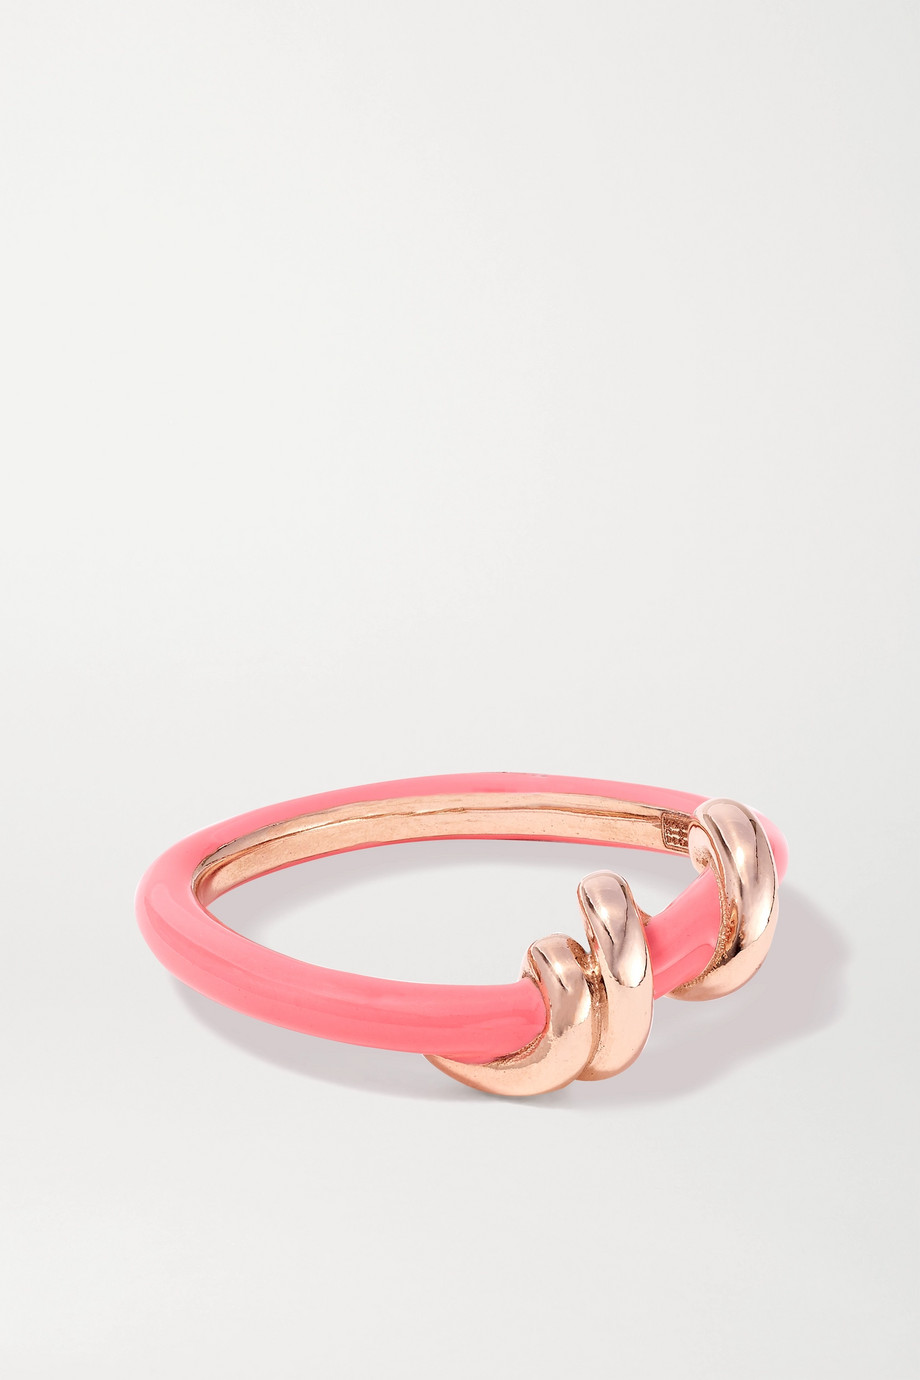 Bea Bongiasca Baby Vine 9-karat rose gold and enamel ring